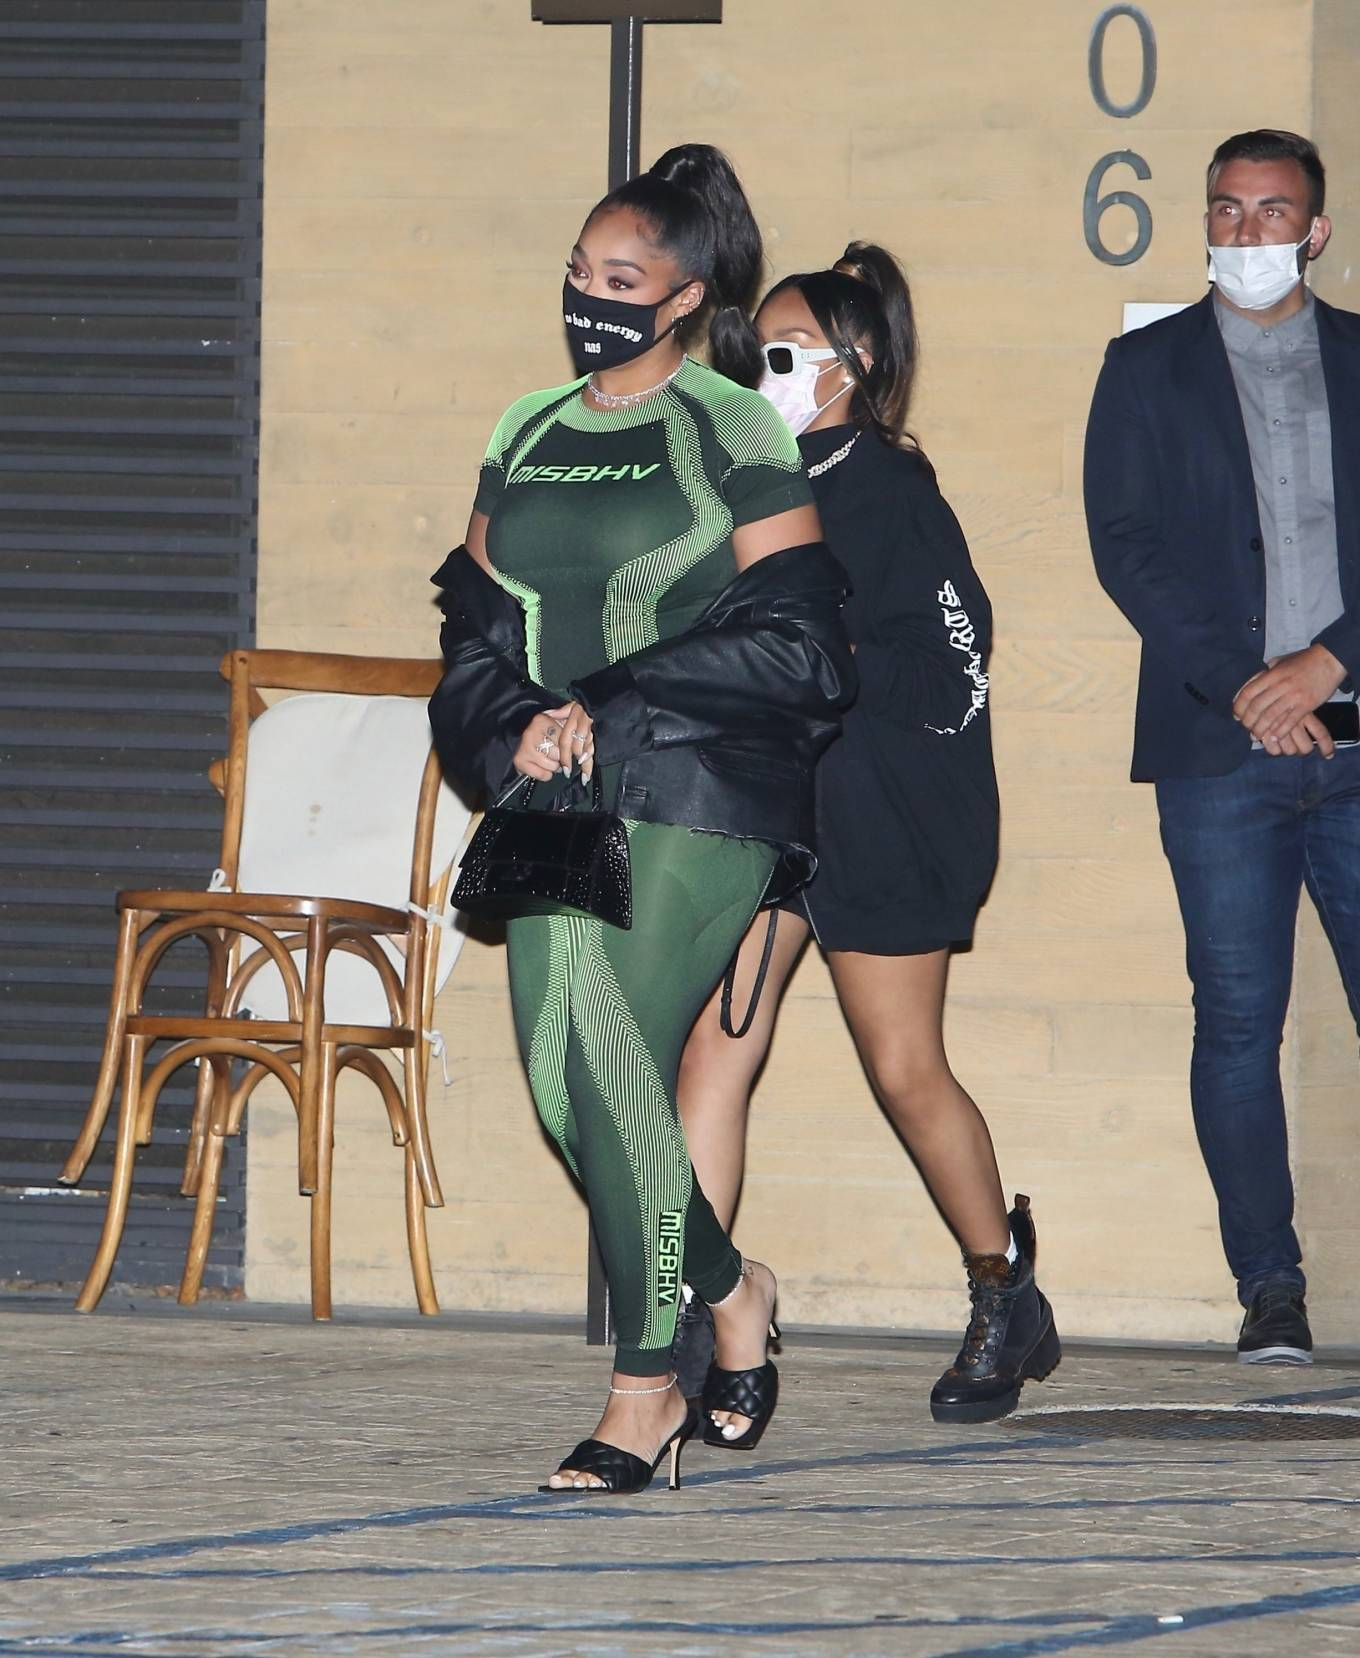 Jordyn Woods rocking Skinny green striped MISBHV pattern leggings with high waist with striped pattern